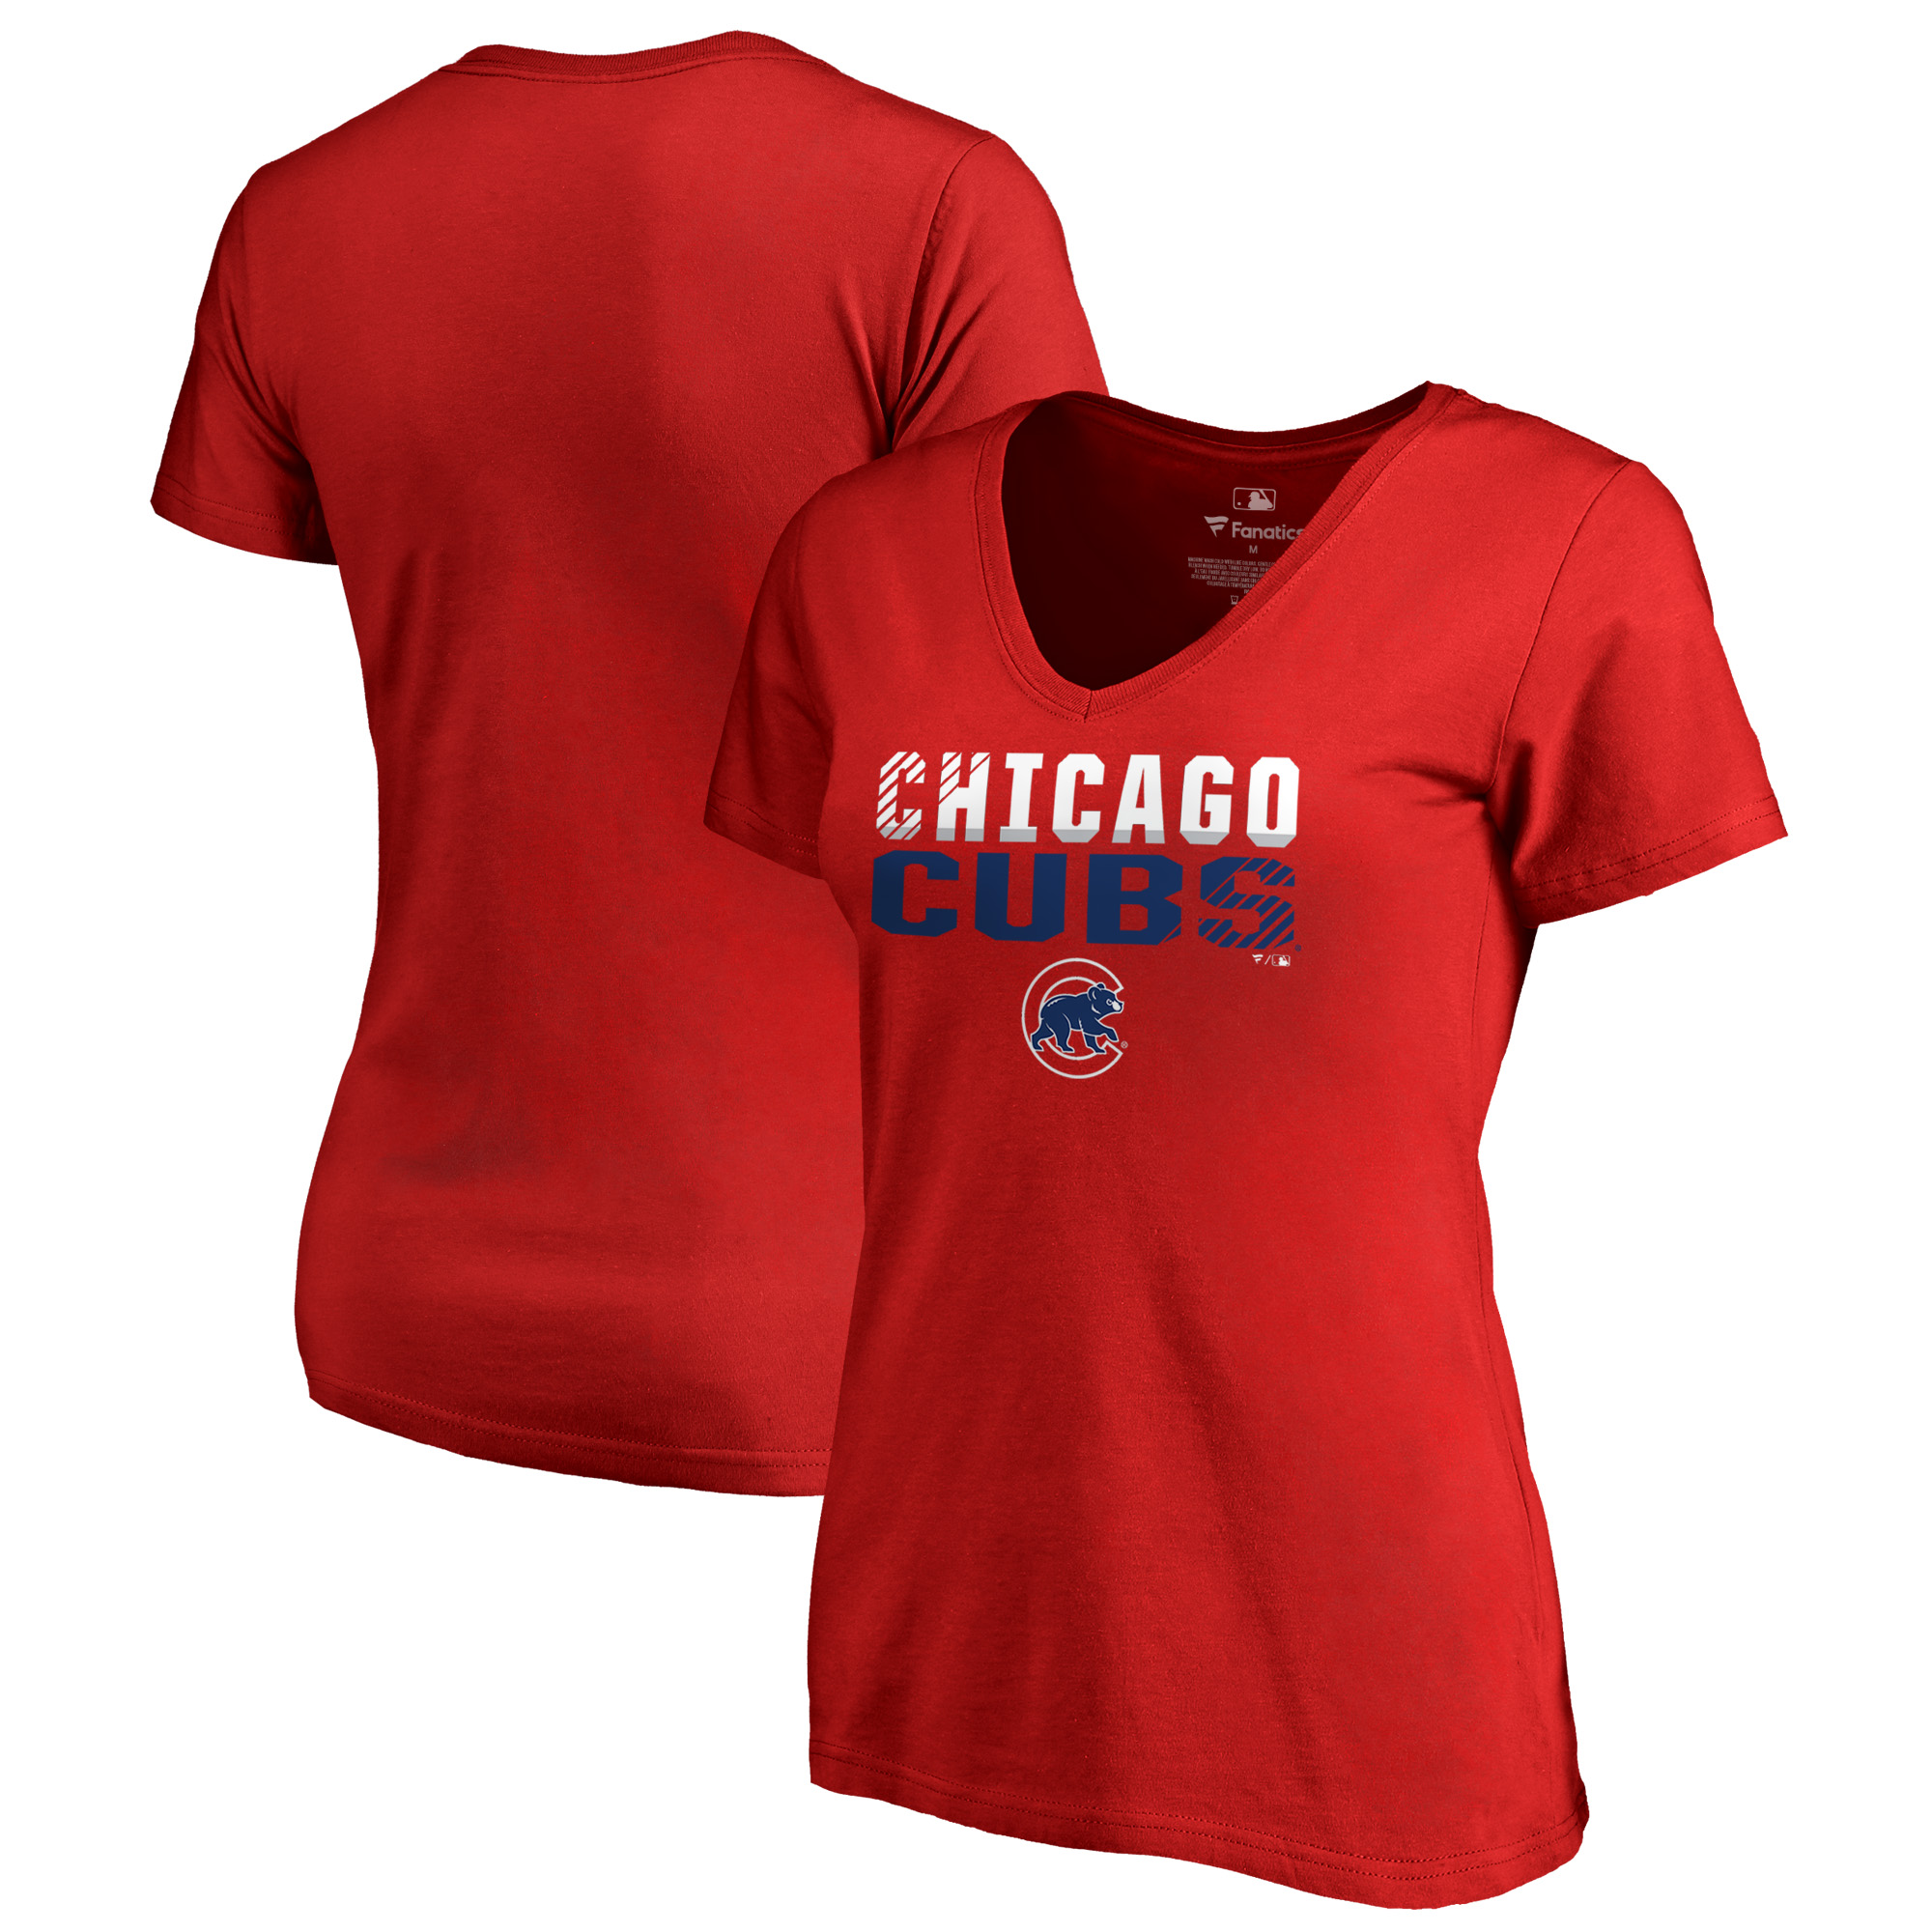 Chicago Cubs Fanatics Branded Women's Fade Out Plus Size V-Neck T-Shirt - Red